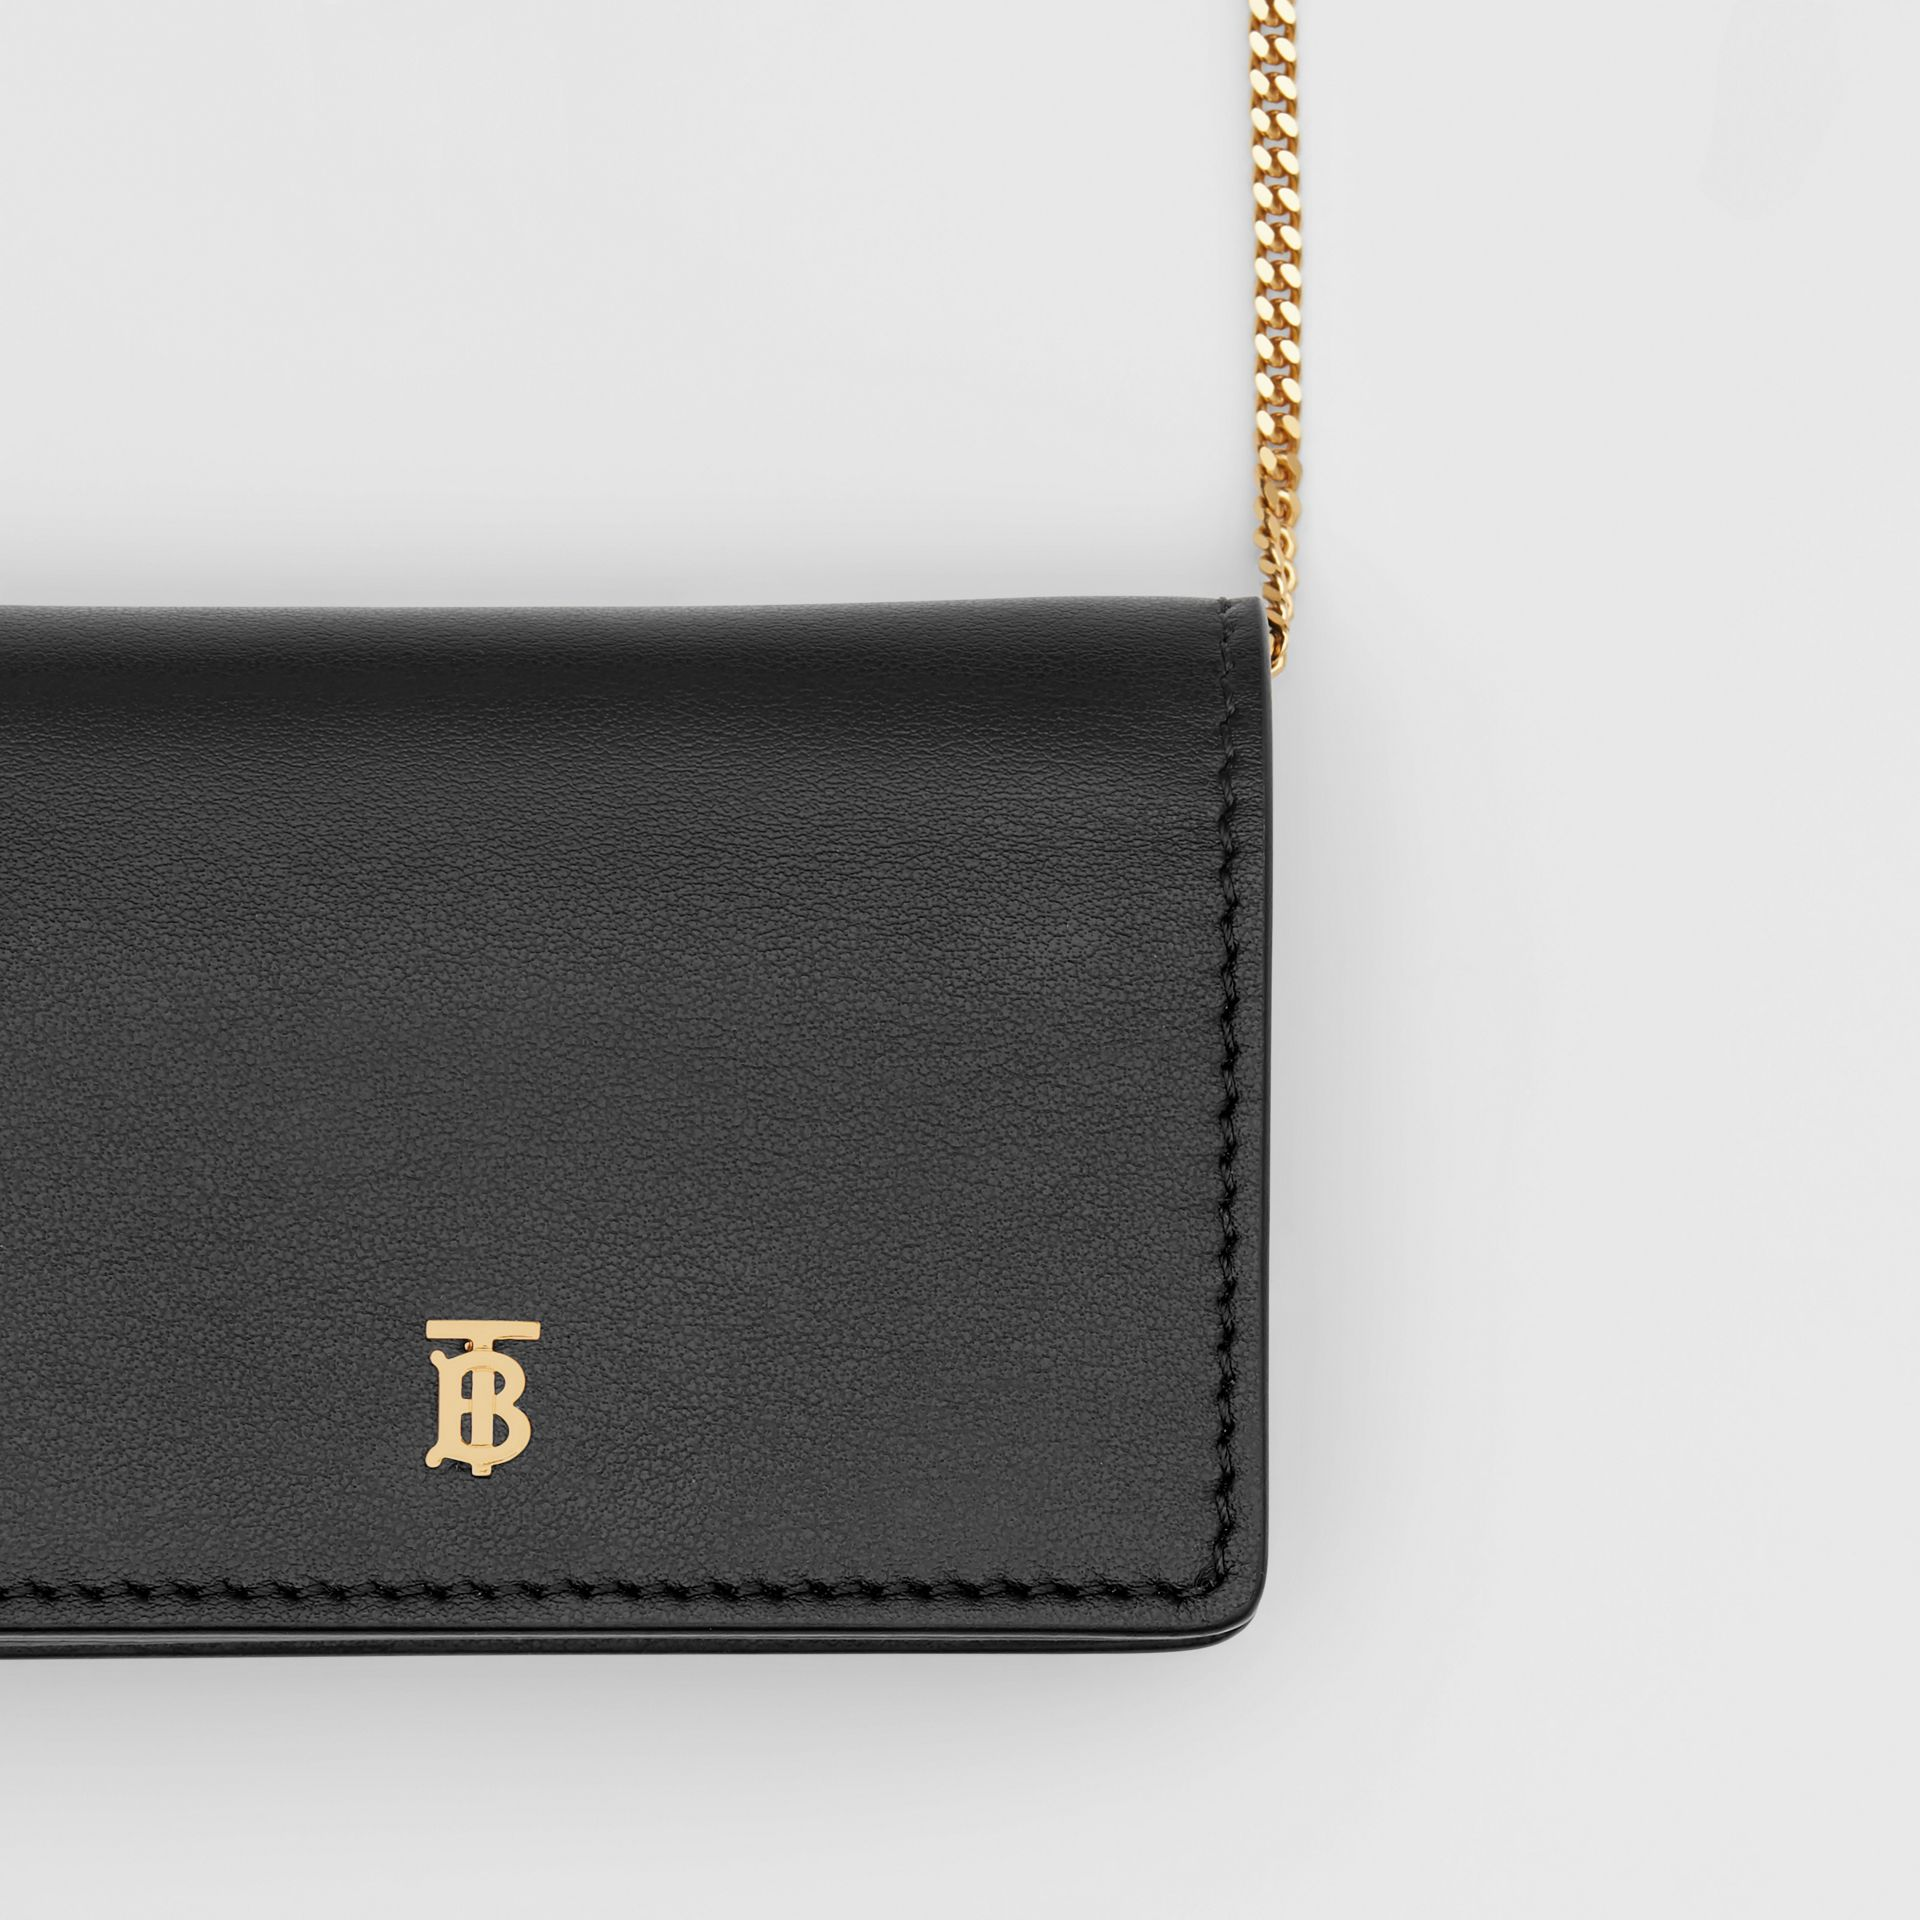 Leather Card Case with Detachable Strap in Black - Women | Burberry - gallery image 1